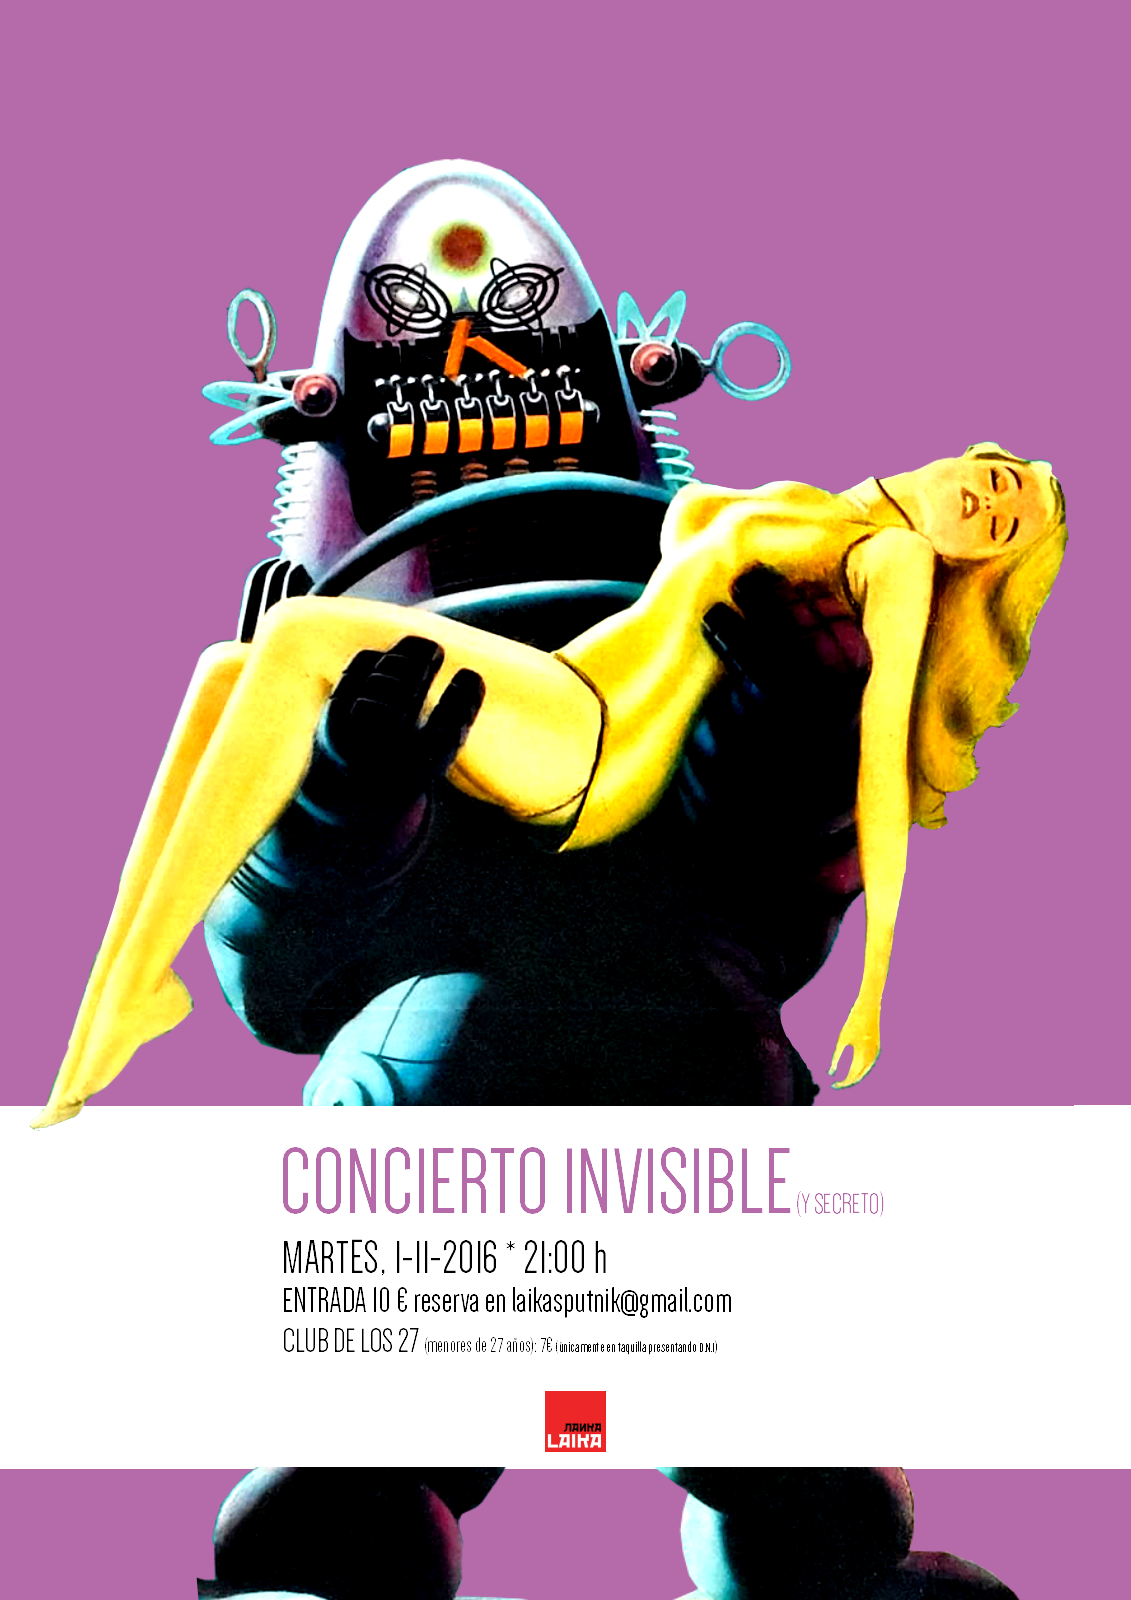 Concierto invisible (y secreto)